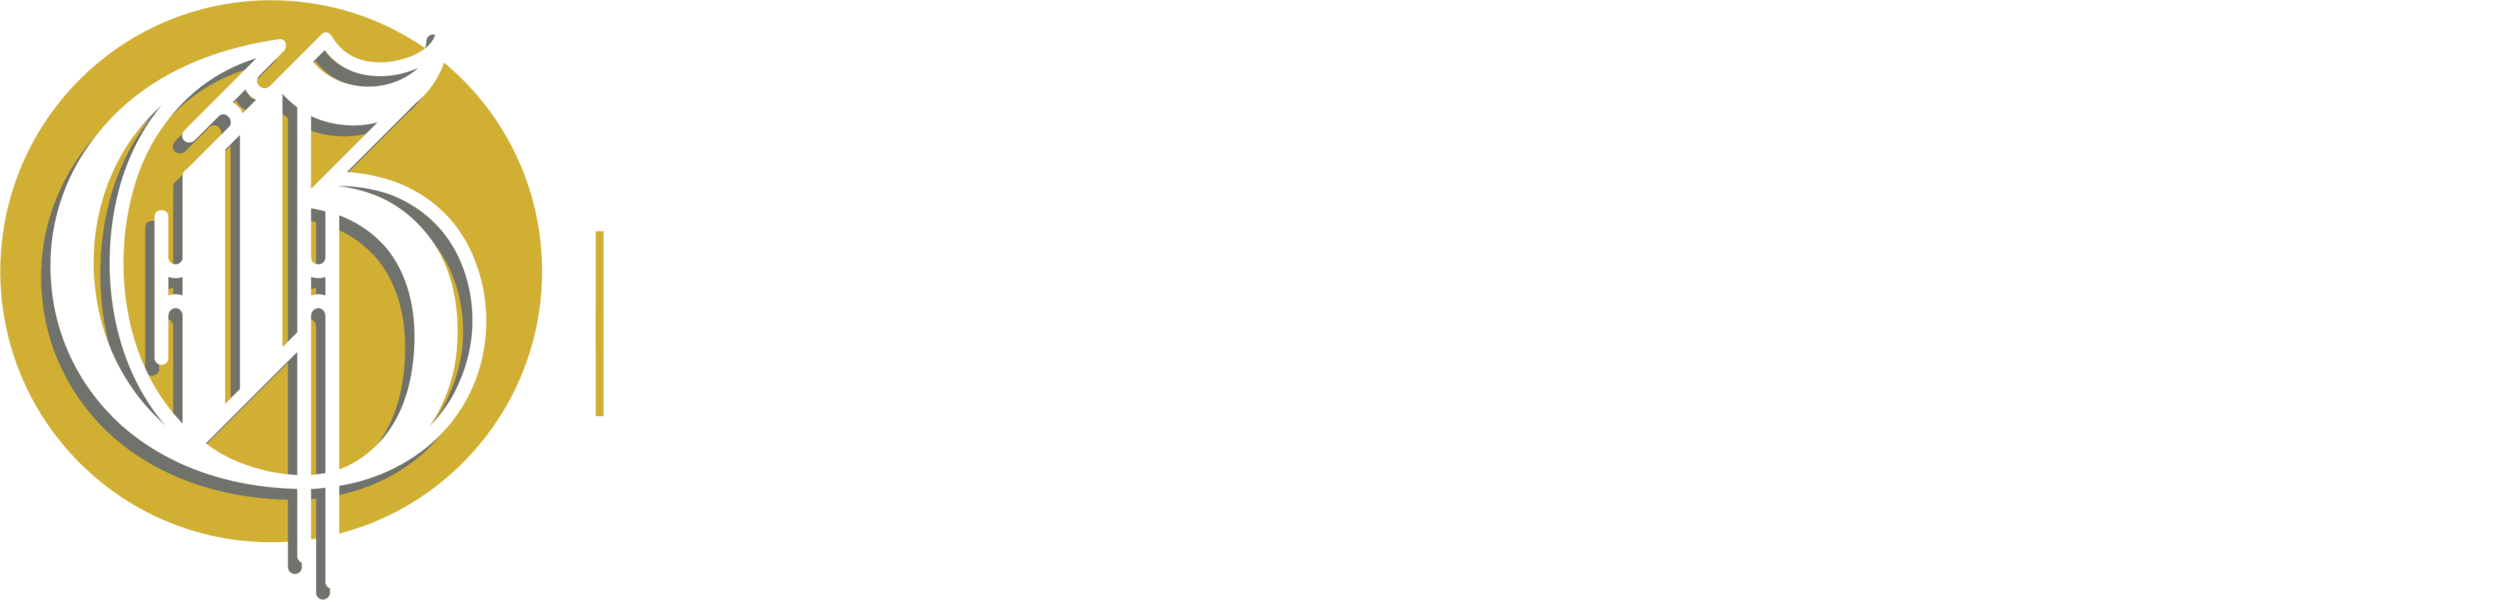 Grace Upon Grace banner long with subtitle white.png